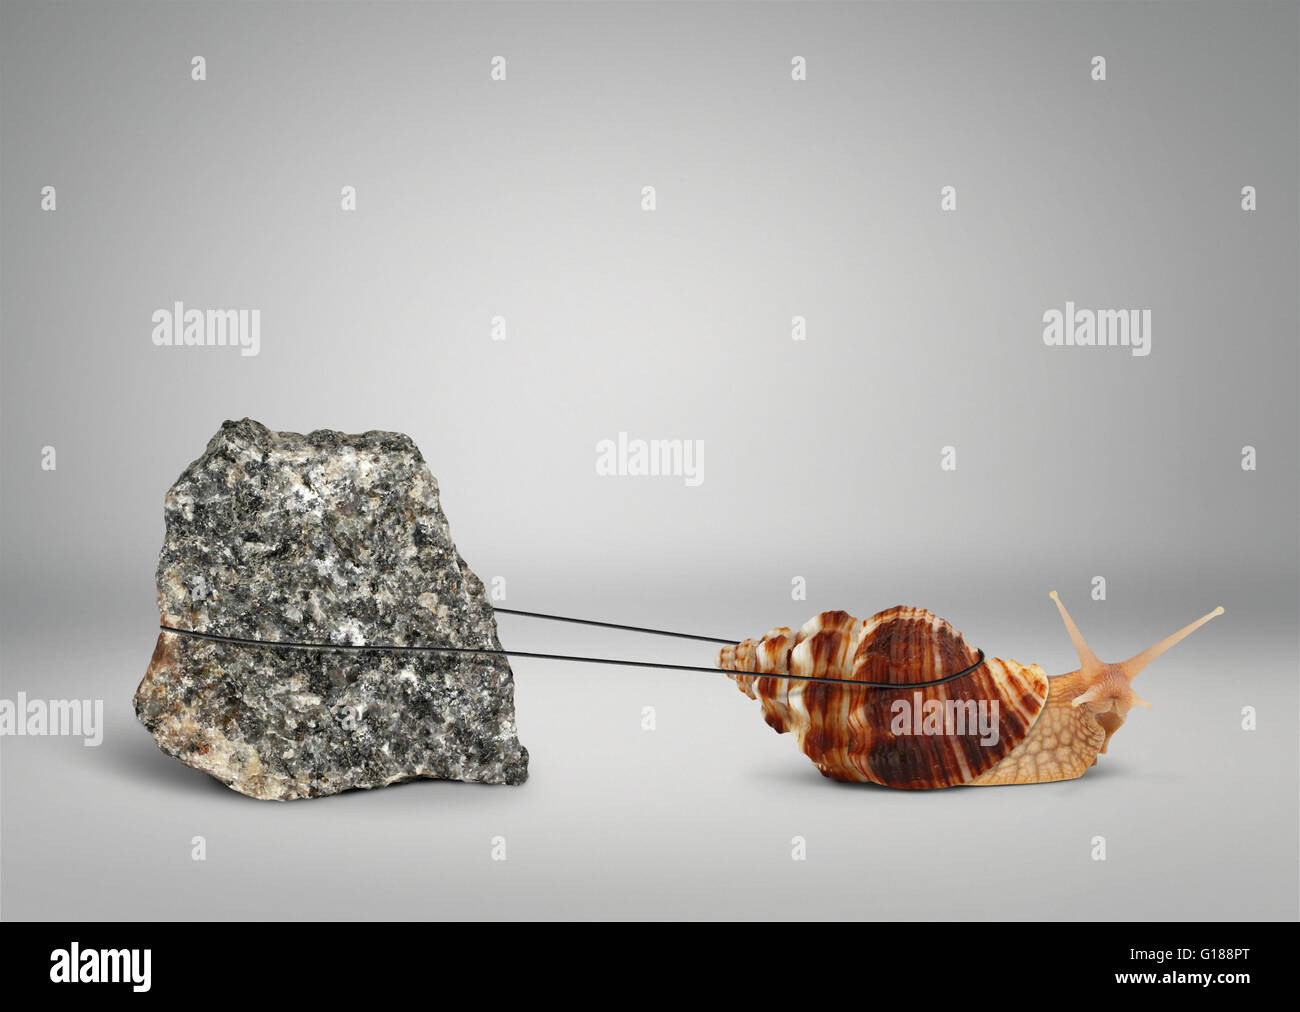 Snail pulling big stone, persistence concept - Stock Image